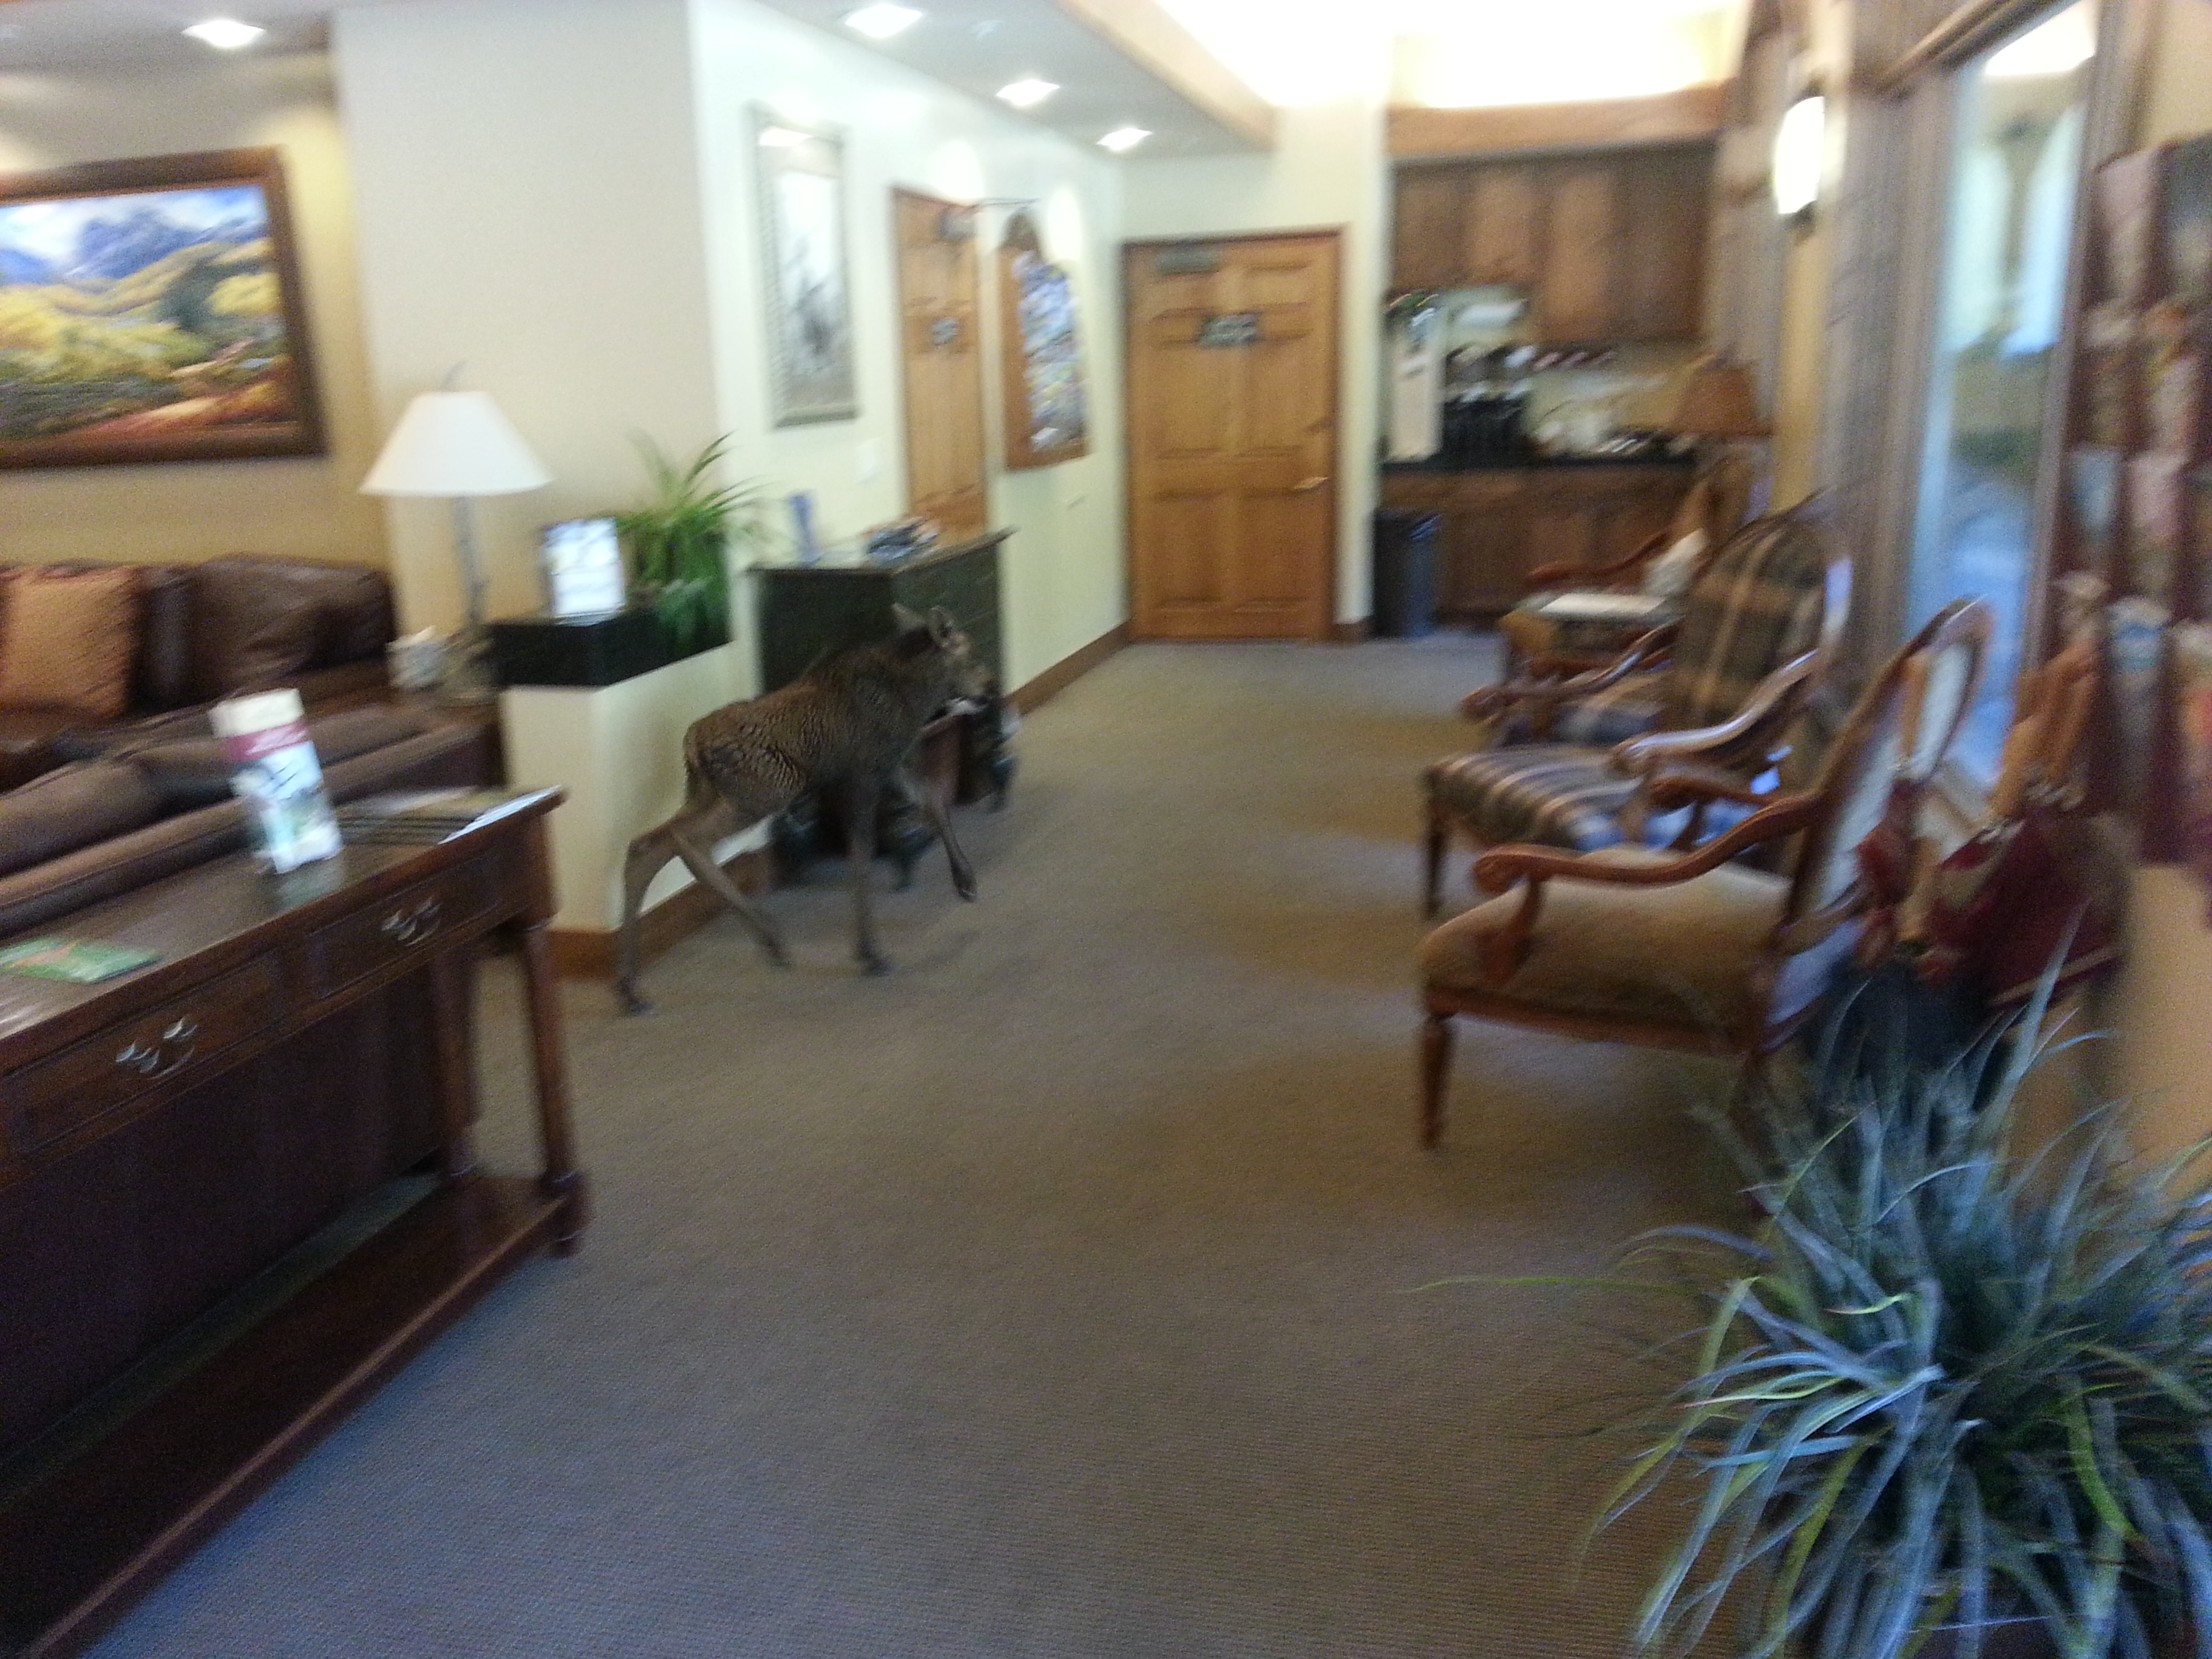 The moose in the Antlers Hotel lobby (credit: Katie Nelson)